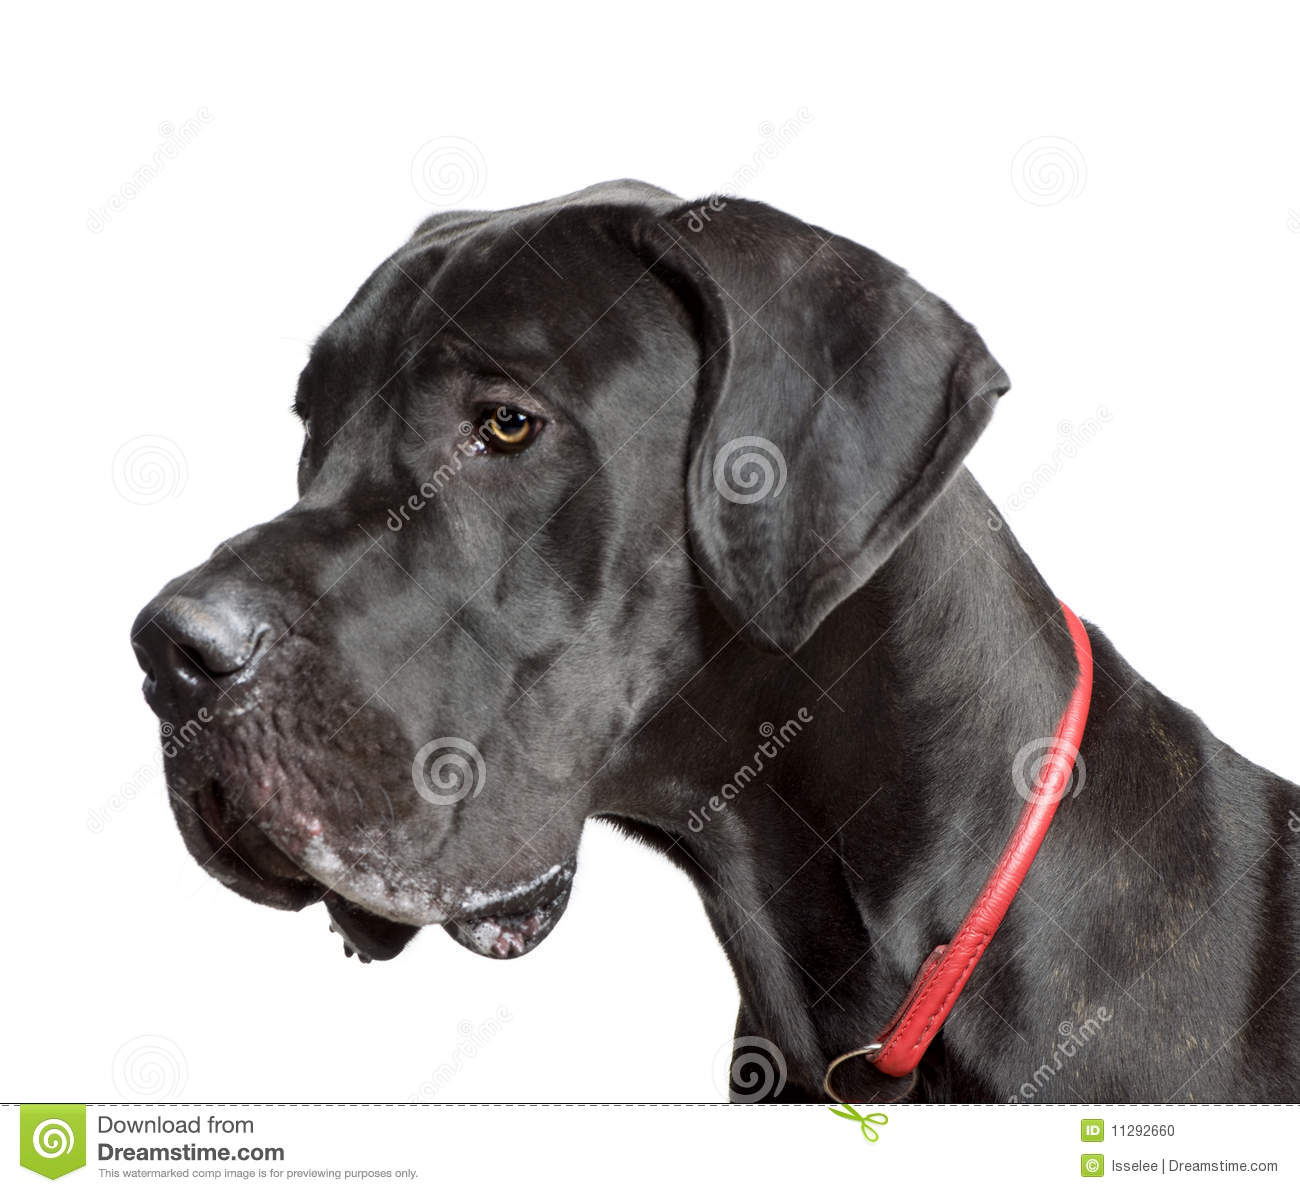 Great dane 11 months old in front of white background studio shot